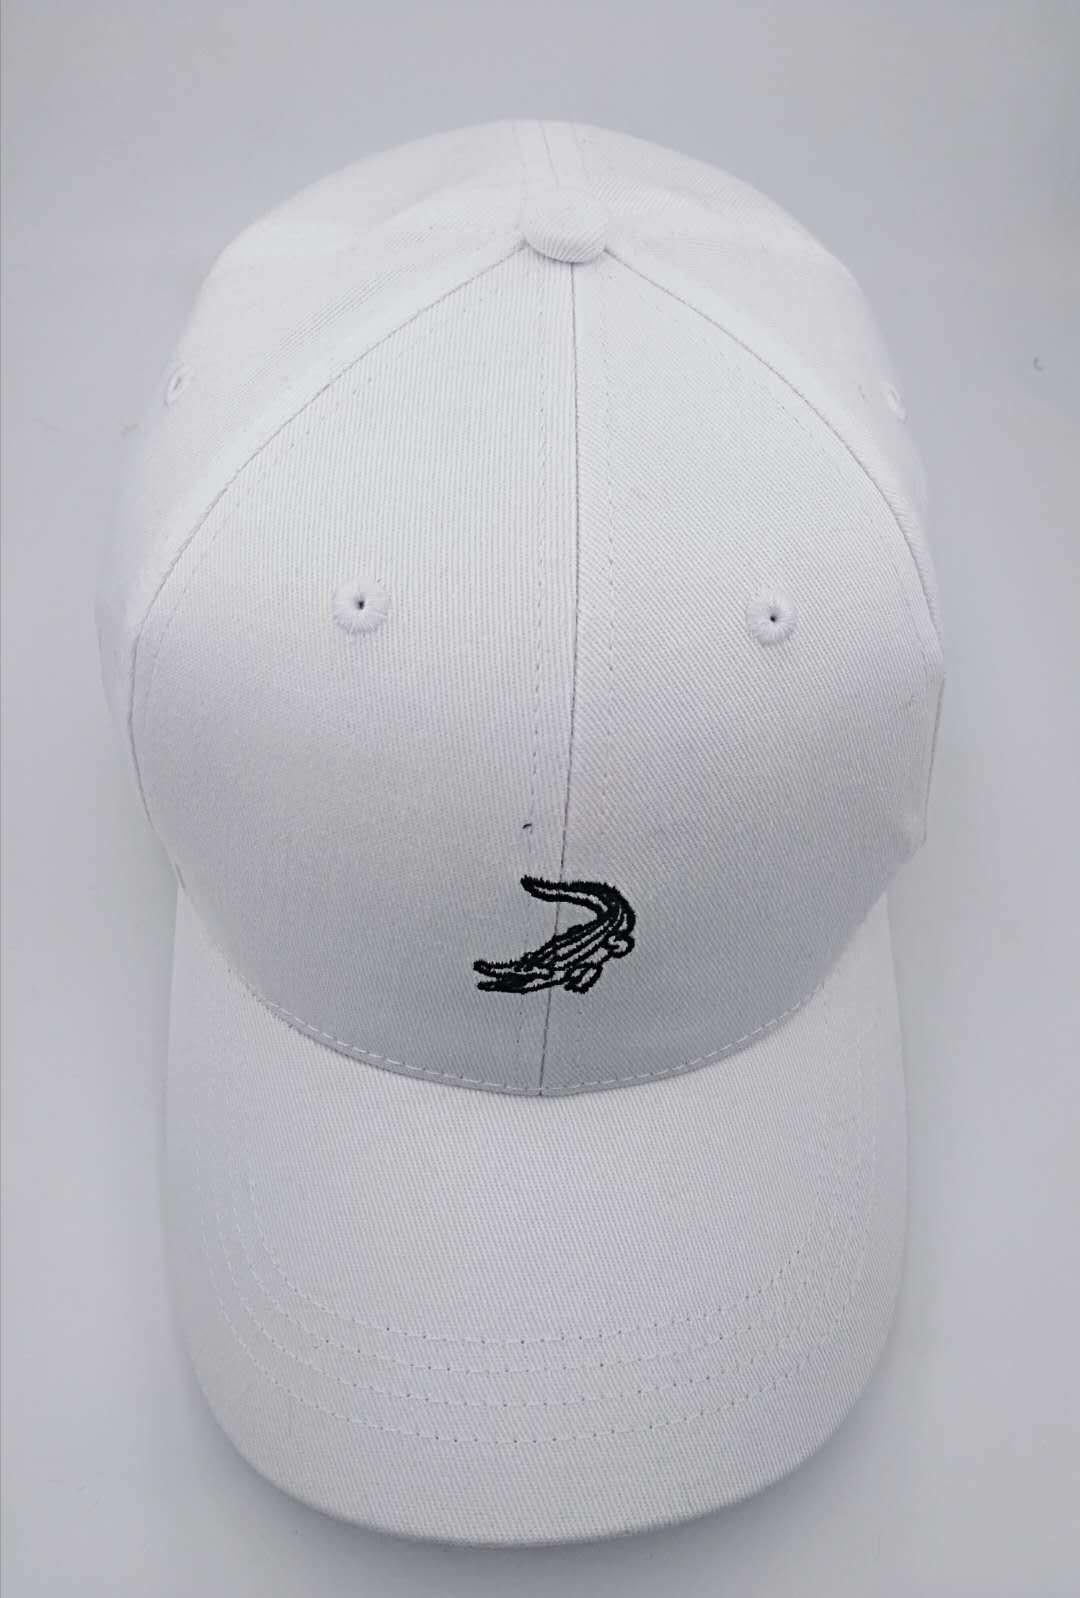 341c7adc New Fashion Adult Golf Baseball Sports Cap with Unique Embroidery Low Visor